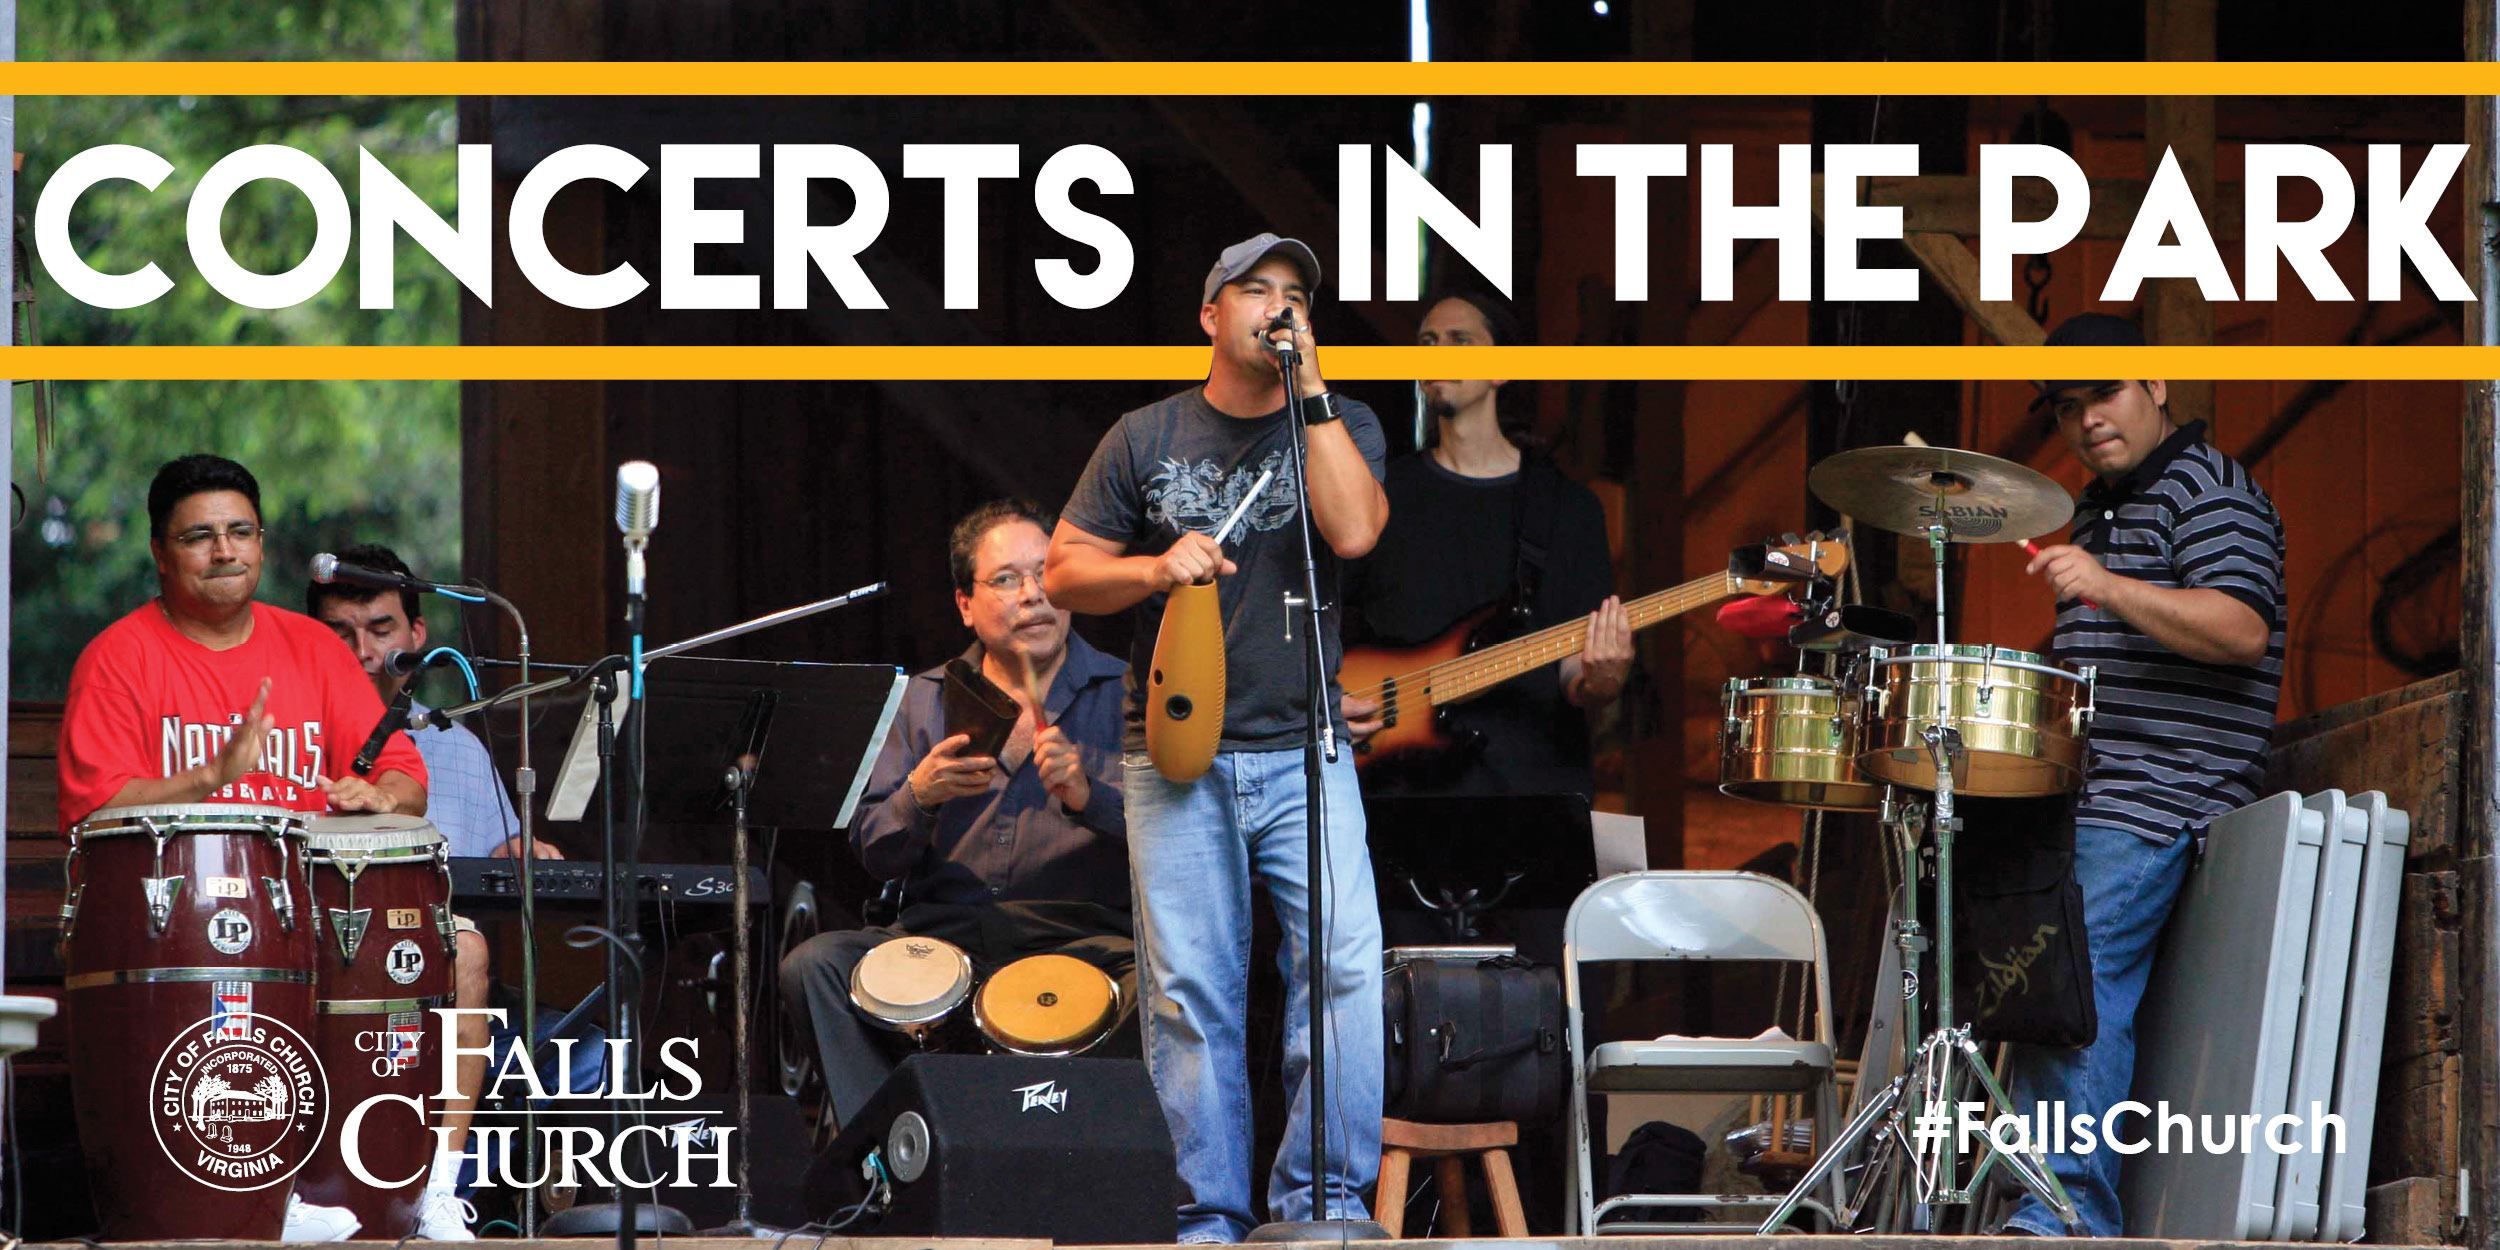 Concerts in the Park | Falls Church, VA - Official Website